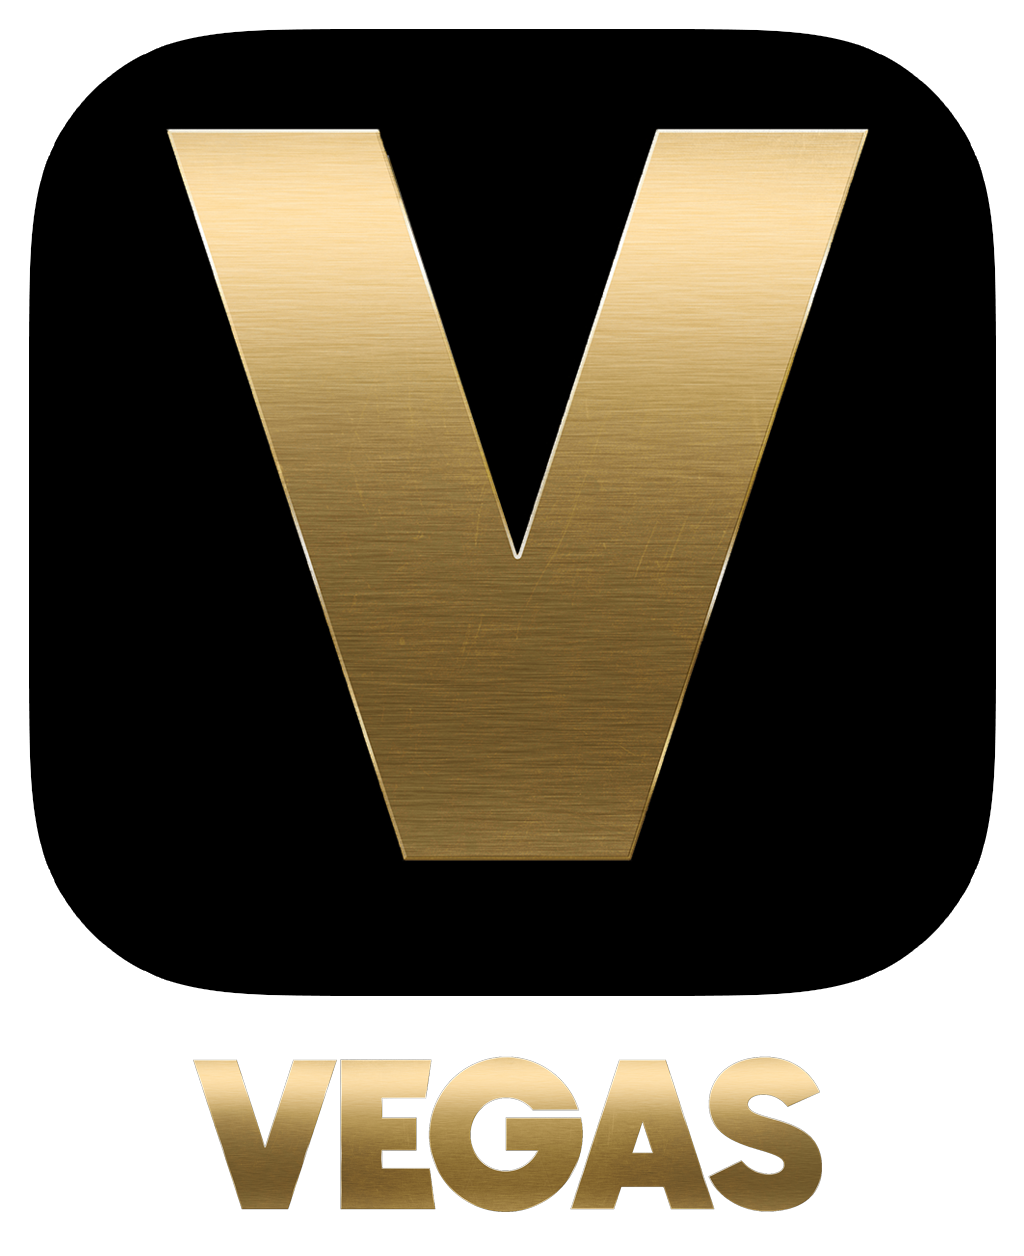 Brand vegas about us privacy policy terms of use contact us advertise with us site map biocorpaavc